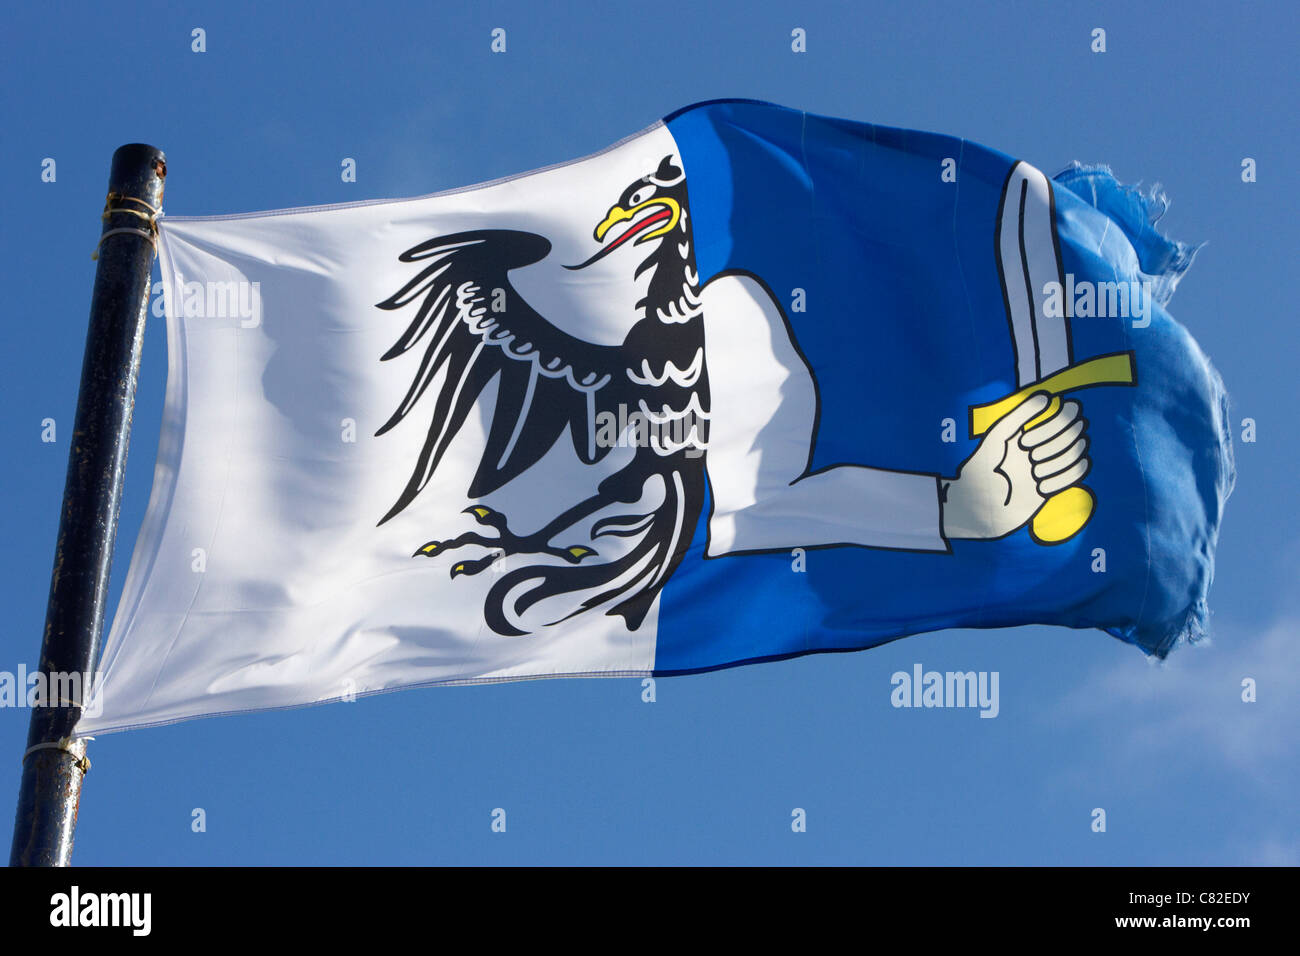 connacht provincial flag flying in republic of ireland - Stock Image